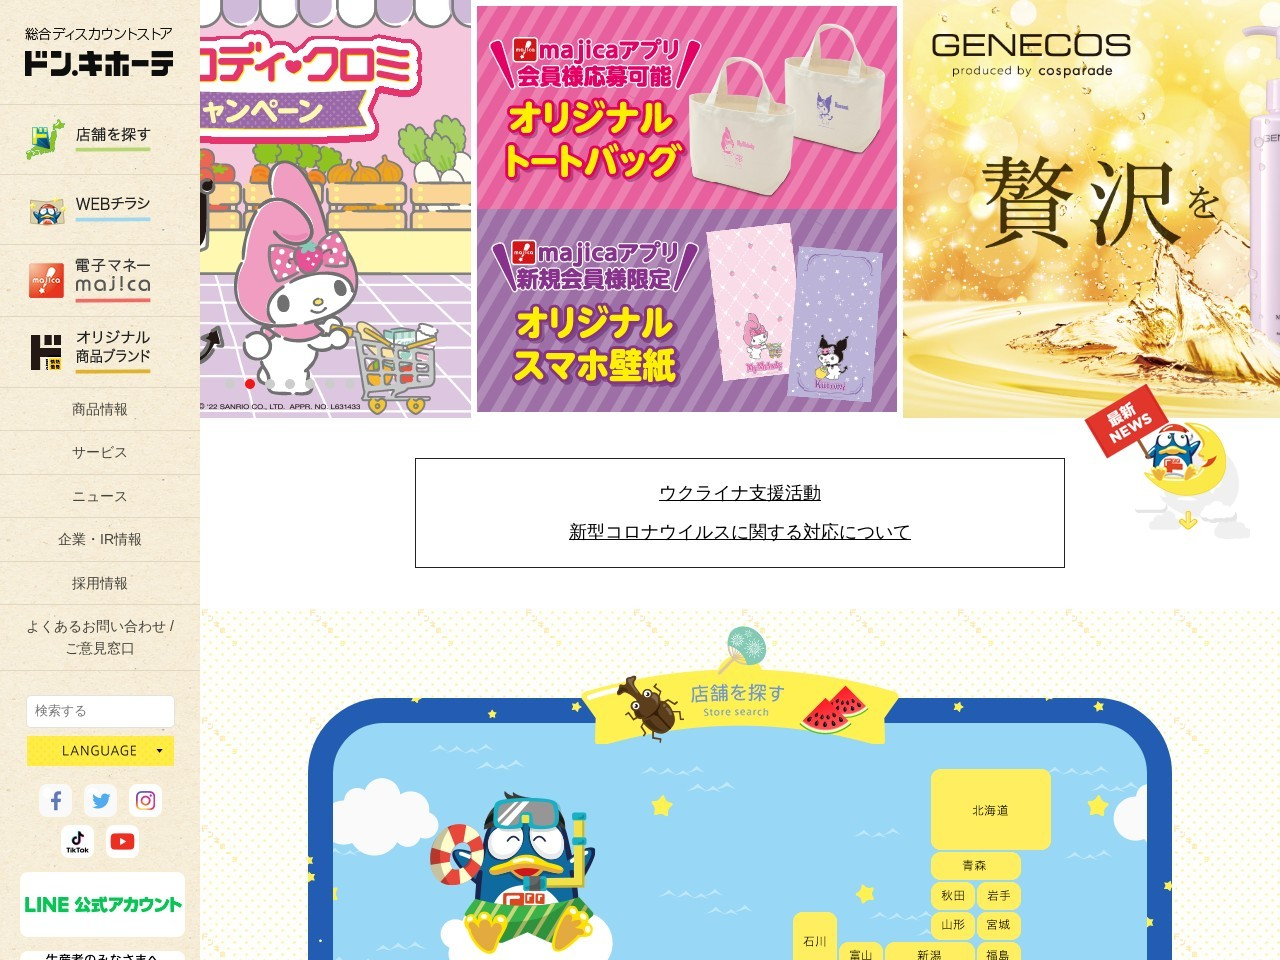 http://www.donki.com/store/shop_detail.php?add=1&shop_id=489&pref=&area=&pre=shop_list&parts=menu_detail